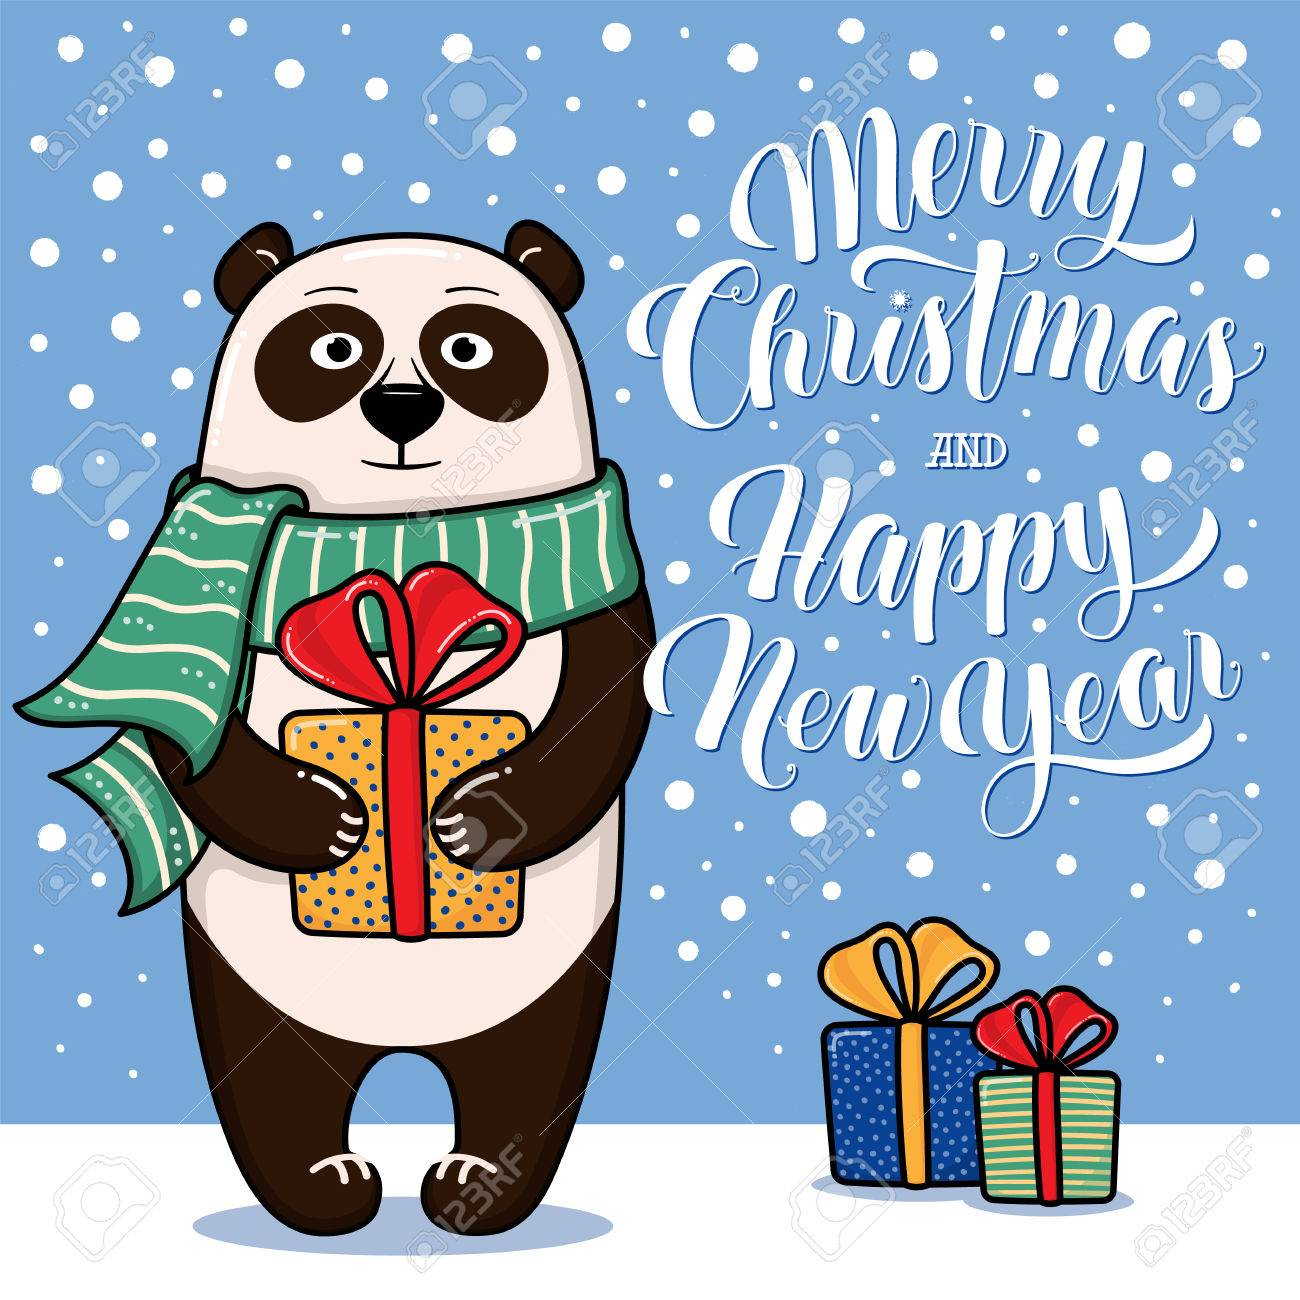 merry christmas and happy new year greeting card with panda gifts snow and lettering